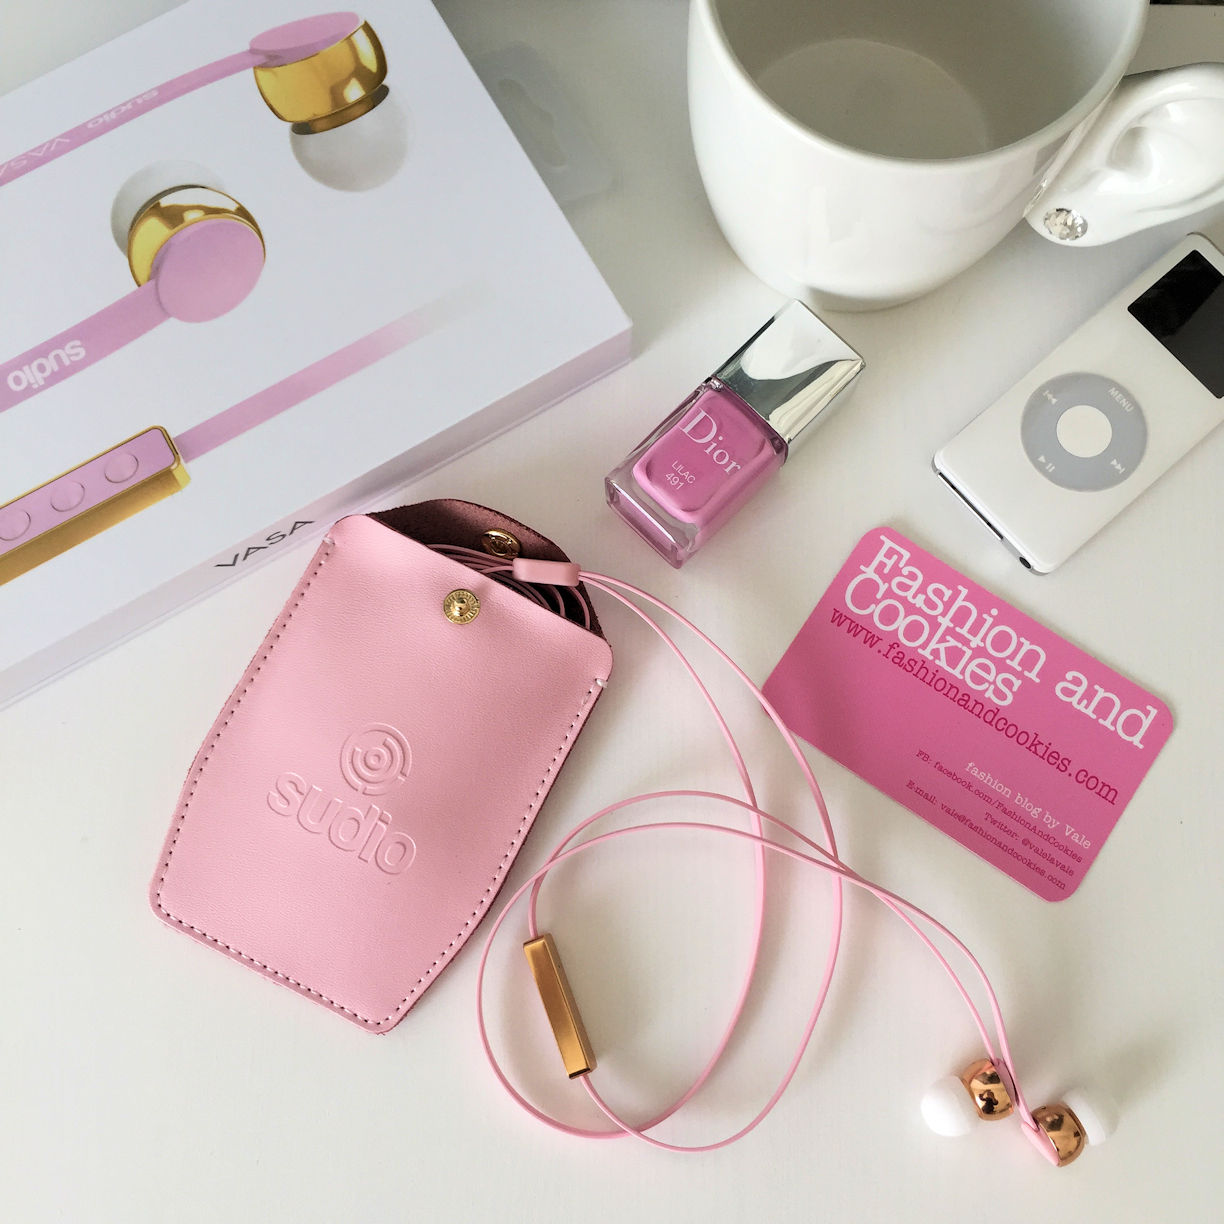 Sudio Sweden Vasa Earphones review, auricolari rosa on Fashion and Cookies fashion blog, fashion blogger style